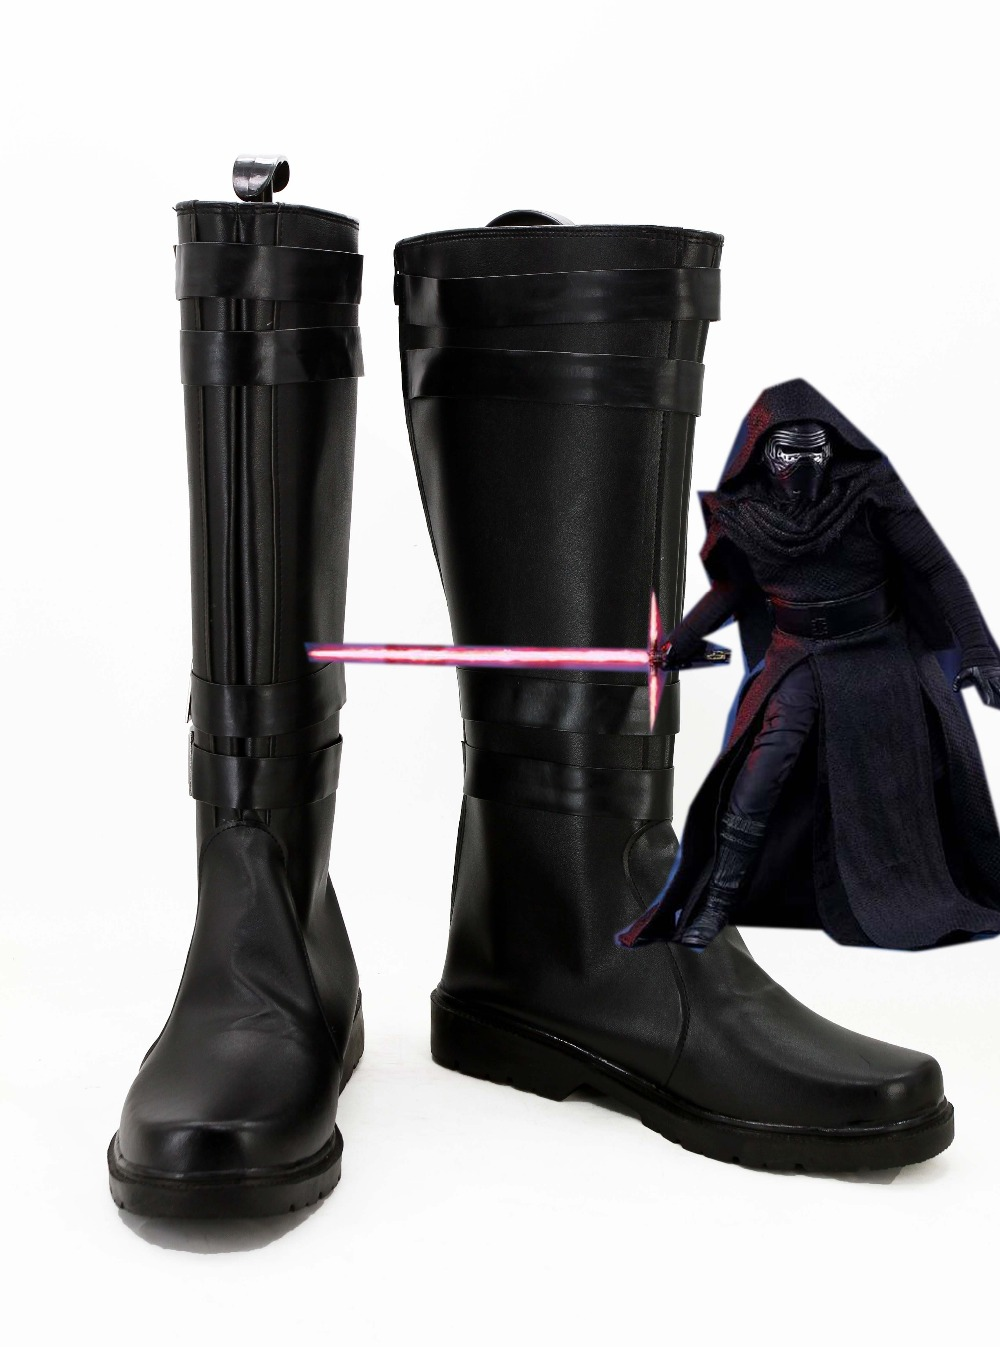 Star Wars 7: The Force Awakens Kylo Ren Boots Schoenen Cosplay Kostuum Custom Made